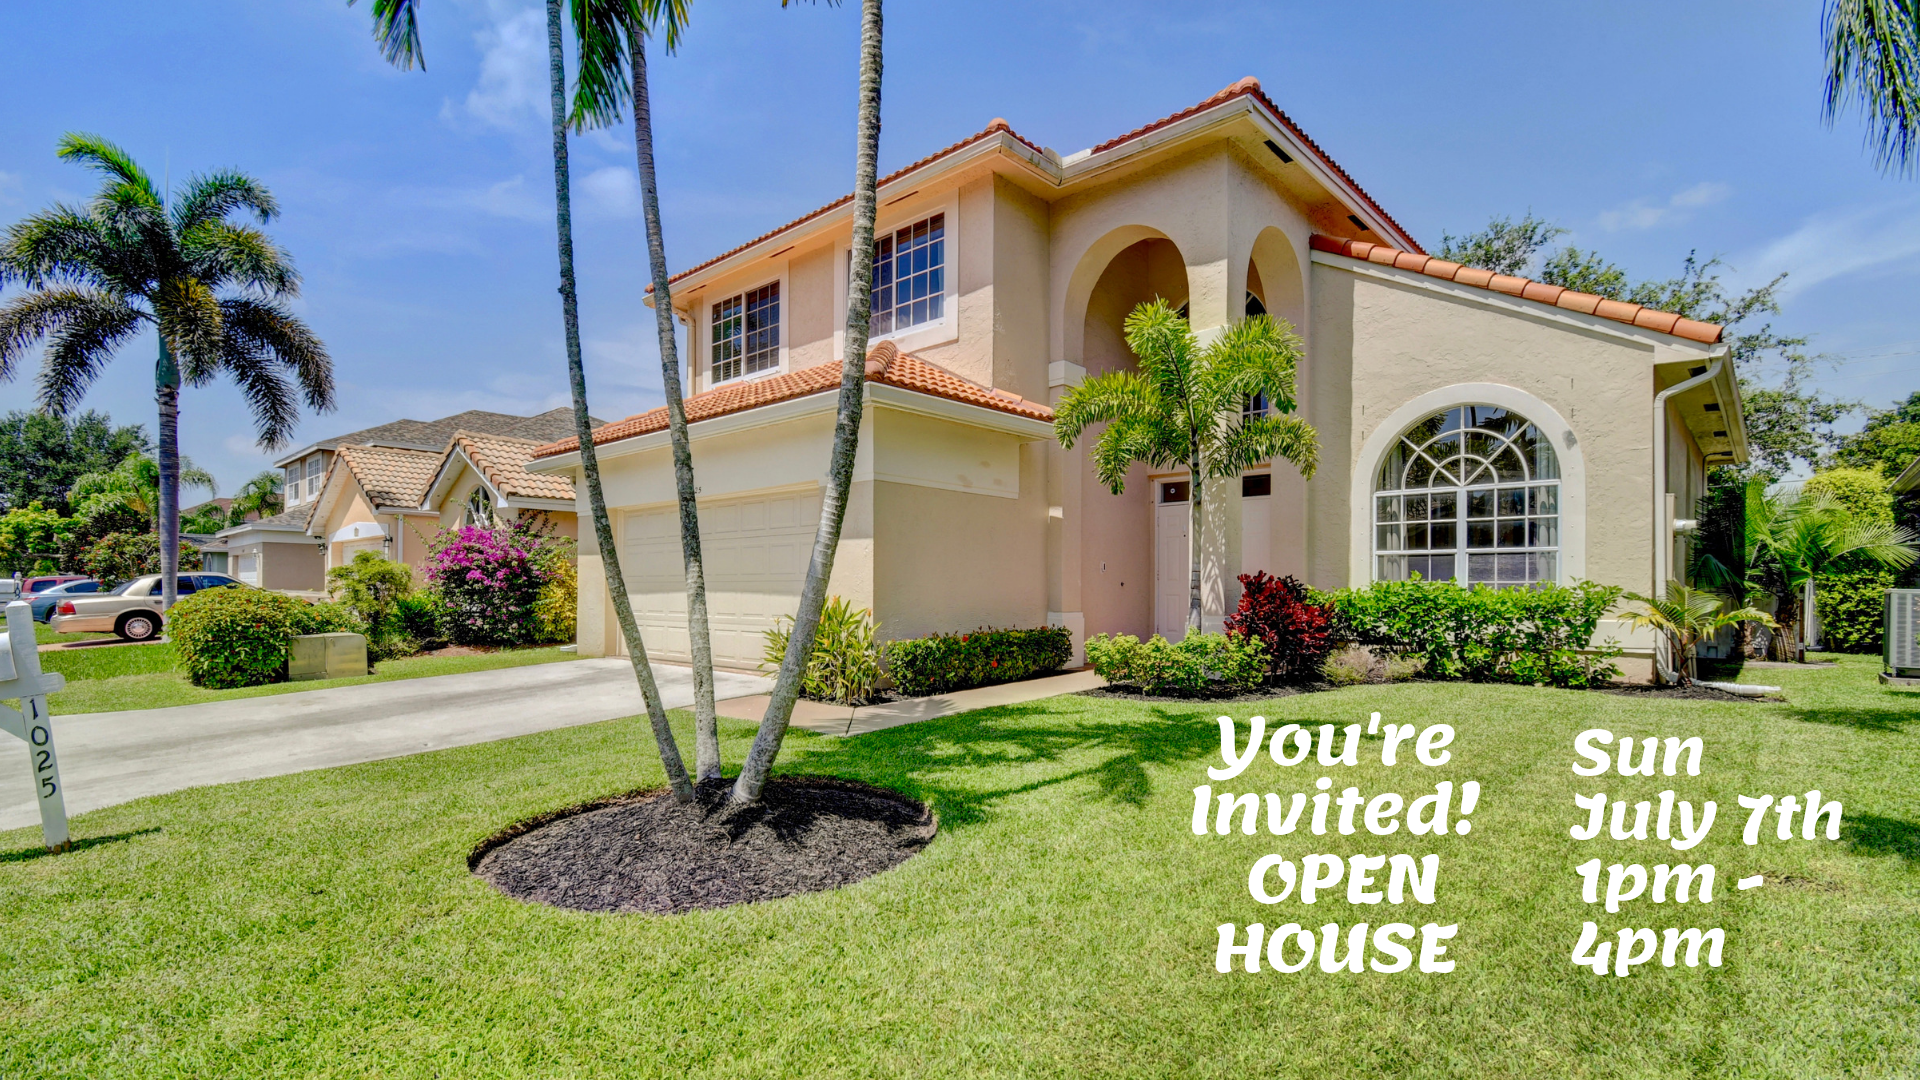 You're Invited to our Open House in Boynton Beach